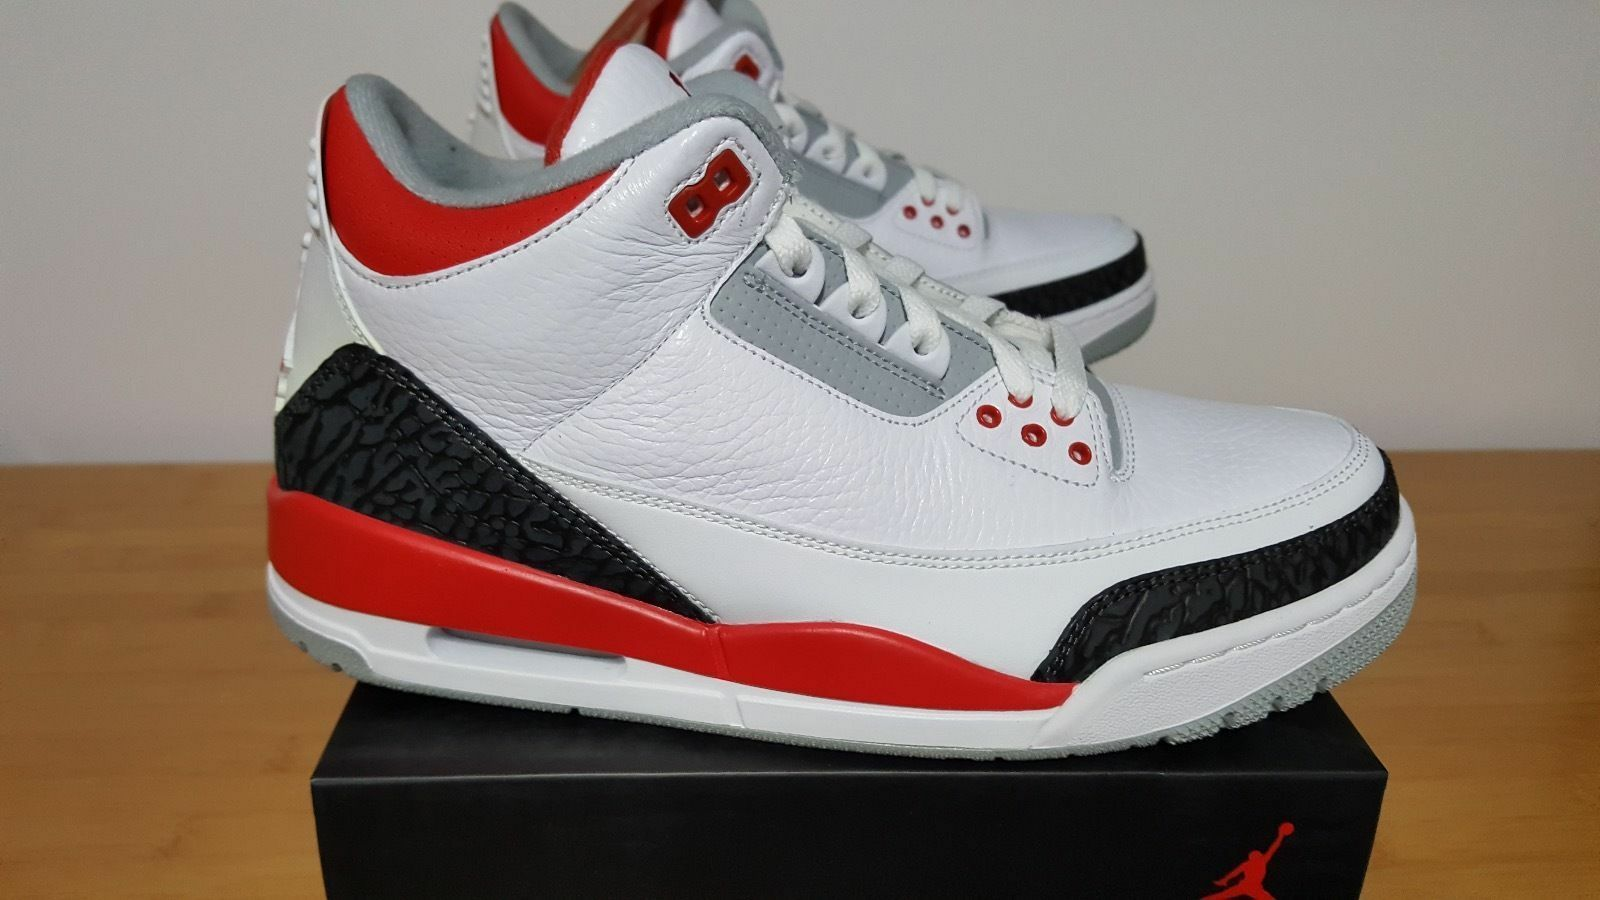 Nike Air Jordan 3 III Retro FIRE RED 11.5 US White Black Cement 88 Bred BHM Flip Seasonal price cuts, discount benefits